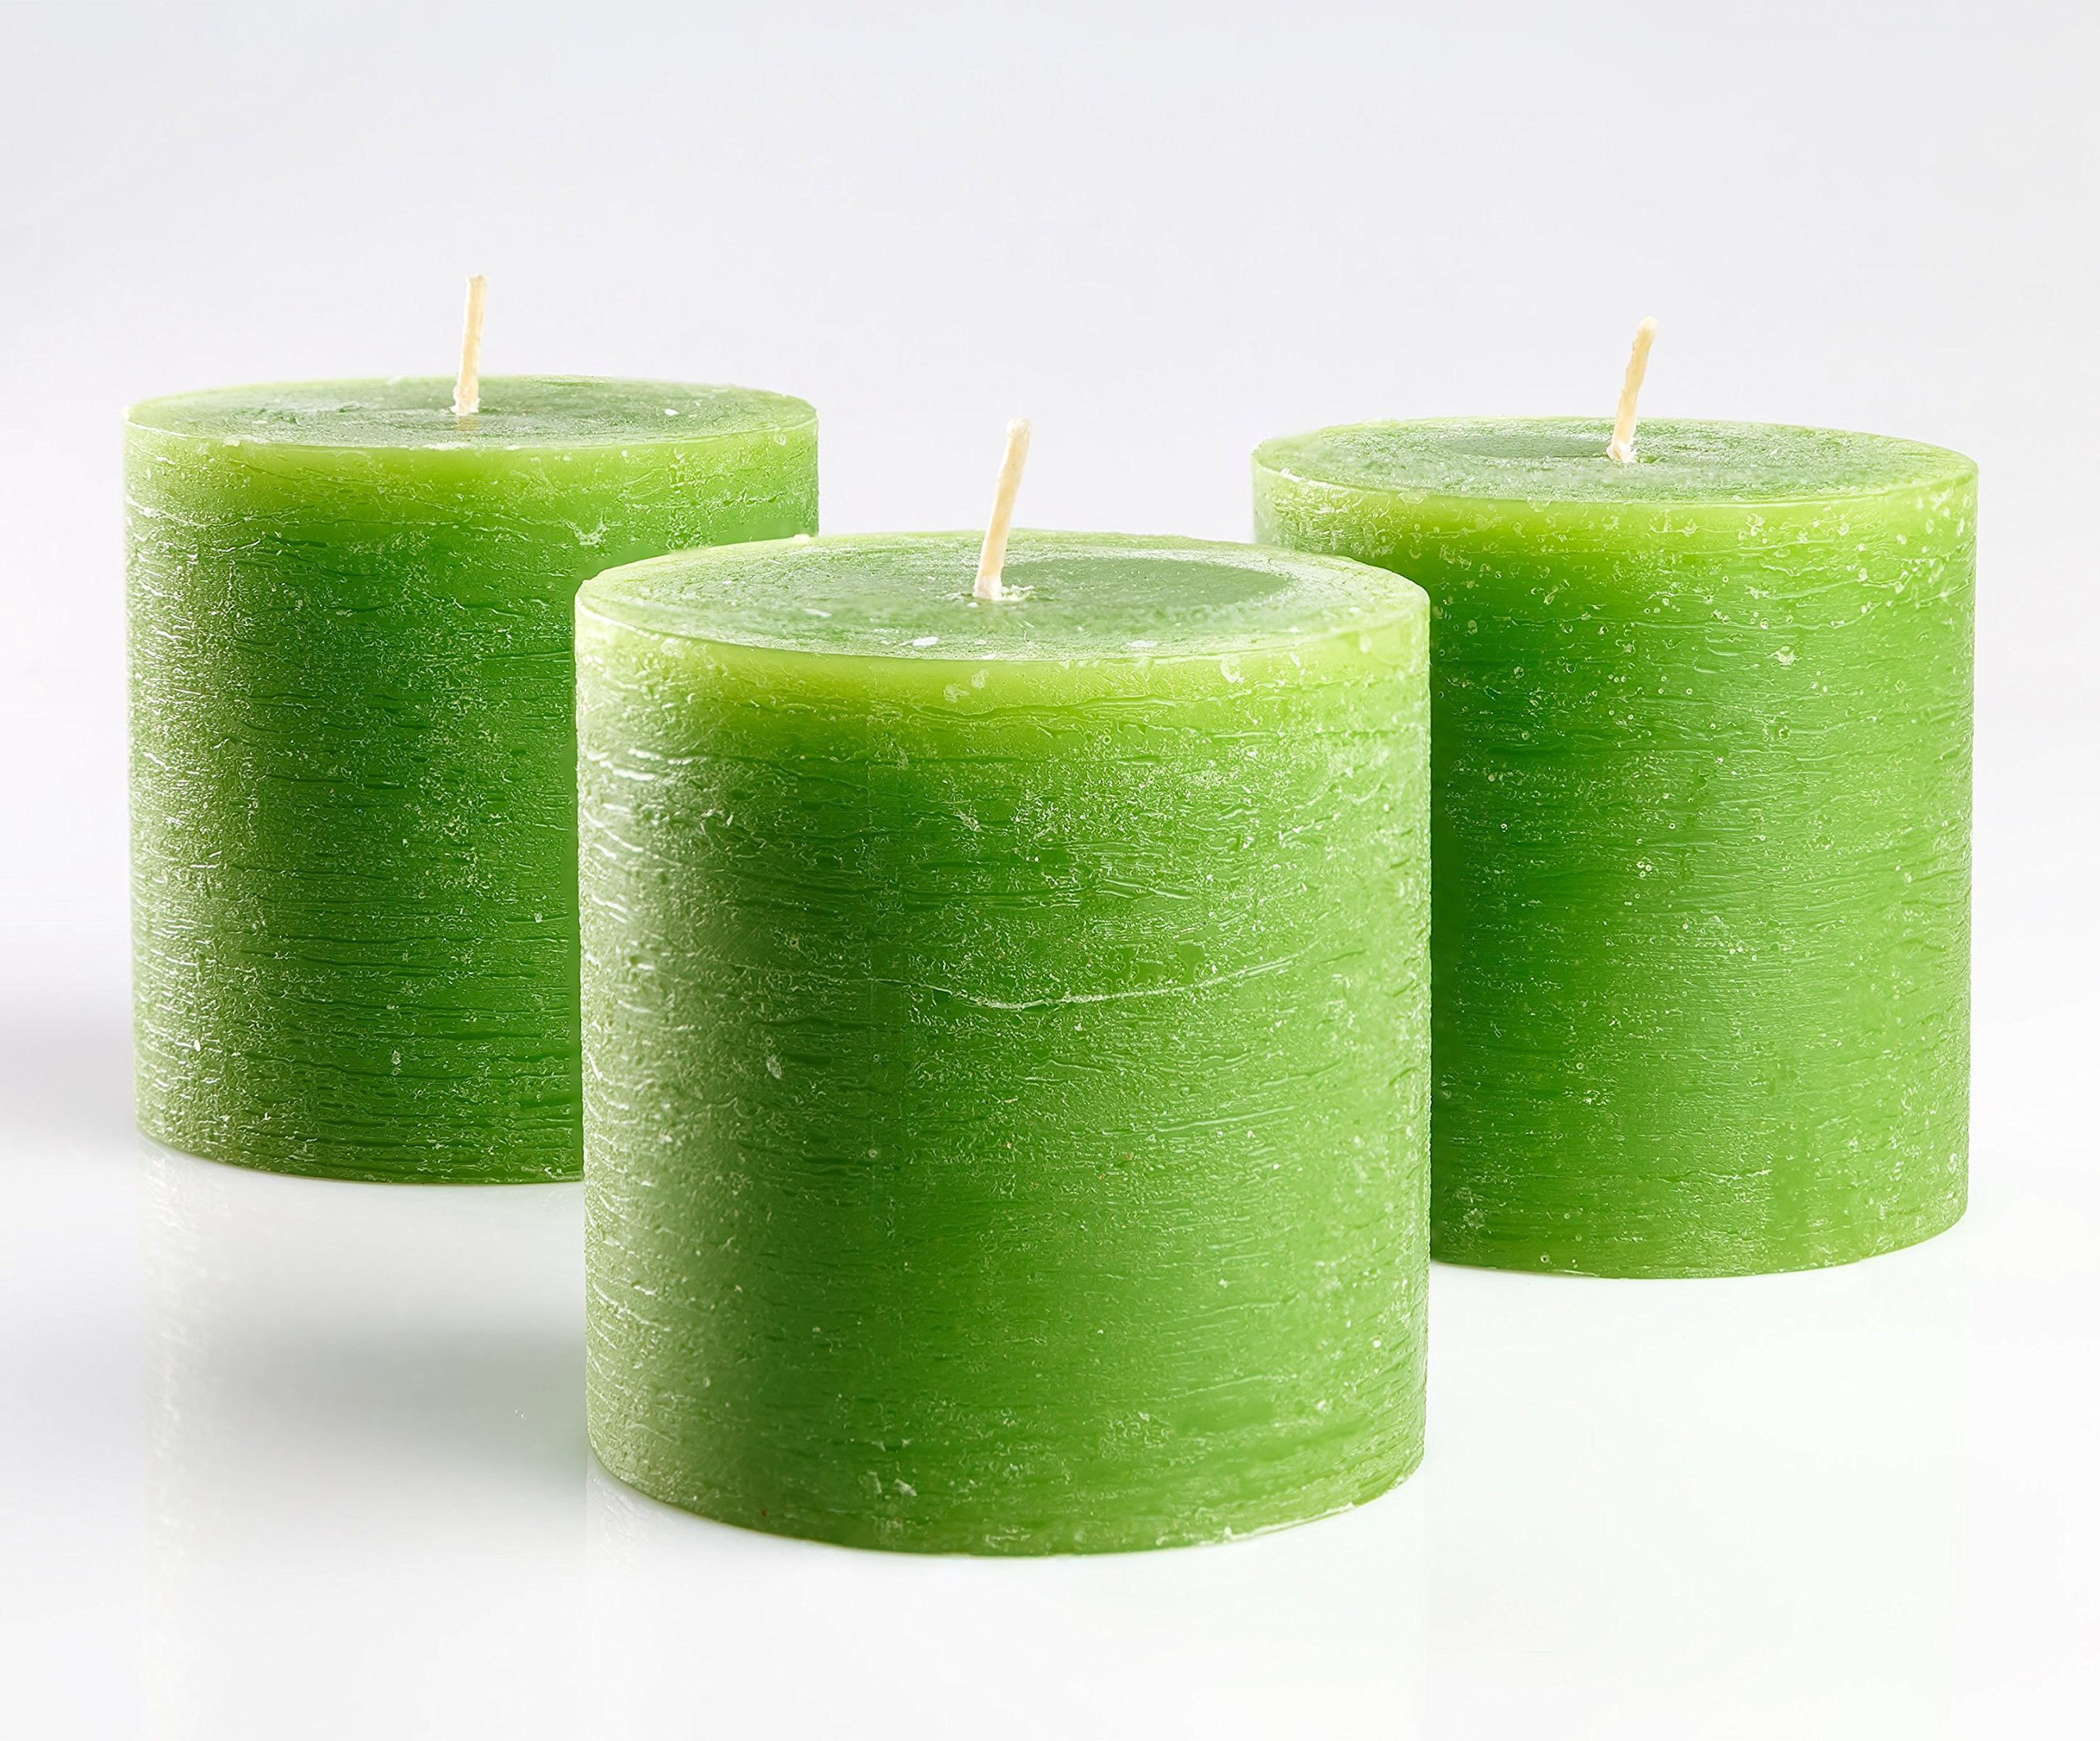 Melt Candle Company Set of 3 Green Pillar Candles 3'' x 3'' Unscented Handpoured Weddings, Home Decoration, Restaurants, Spa, Church Smokeless Cotton Wick by Melt Candle Company (Image #1)